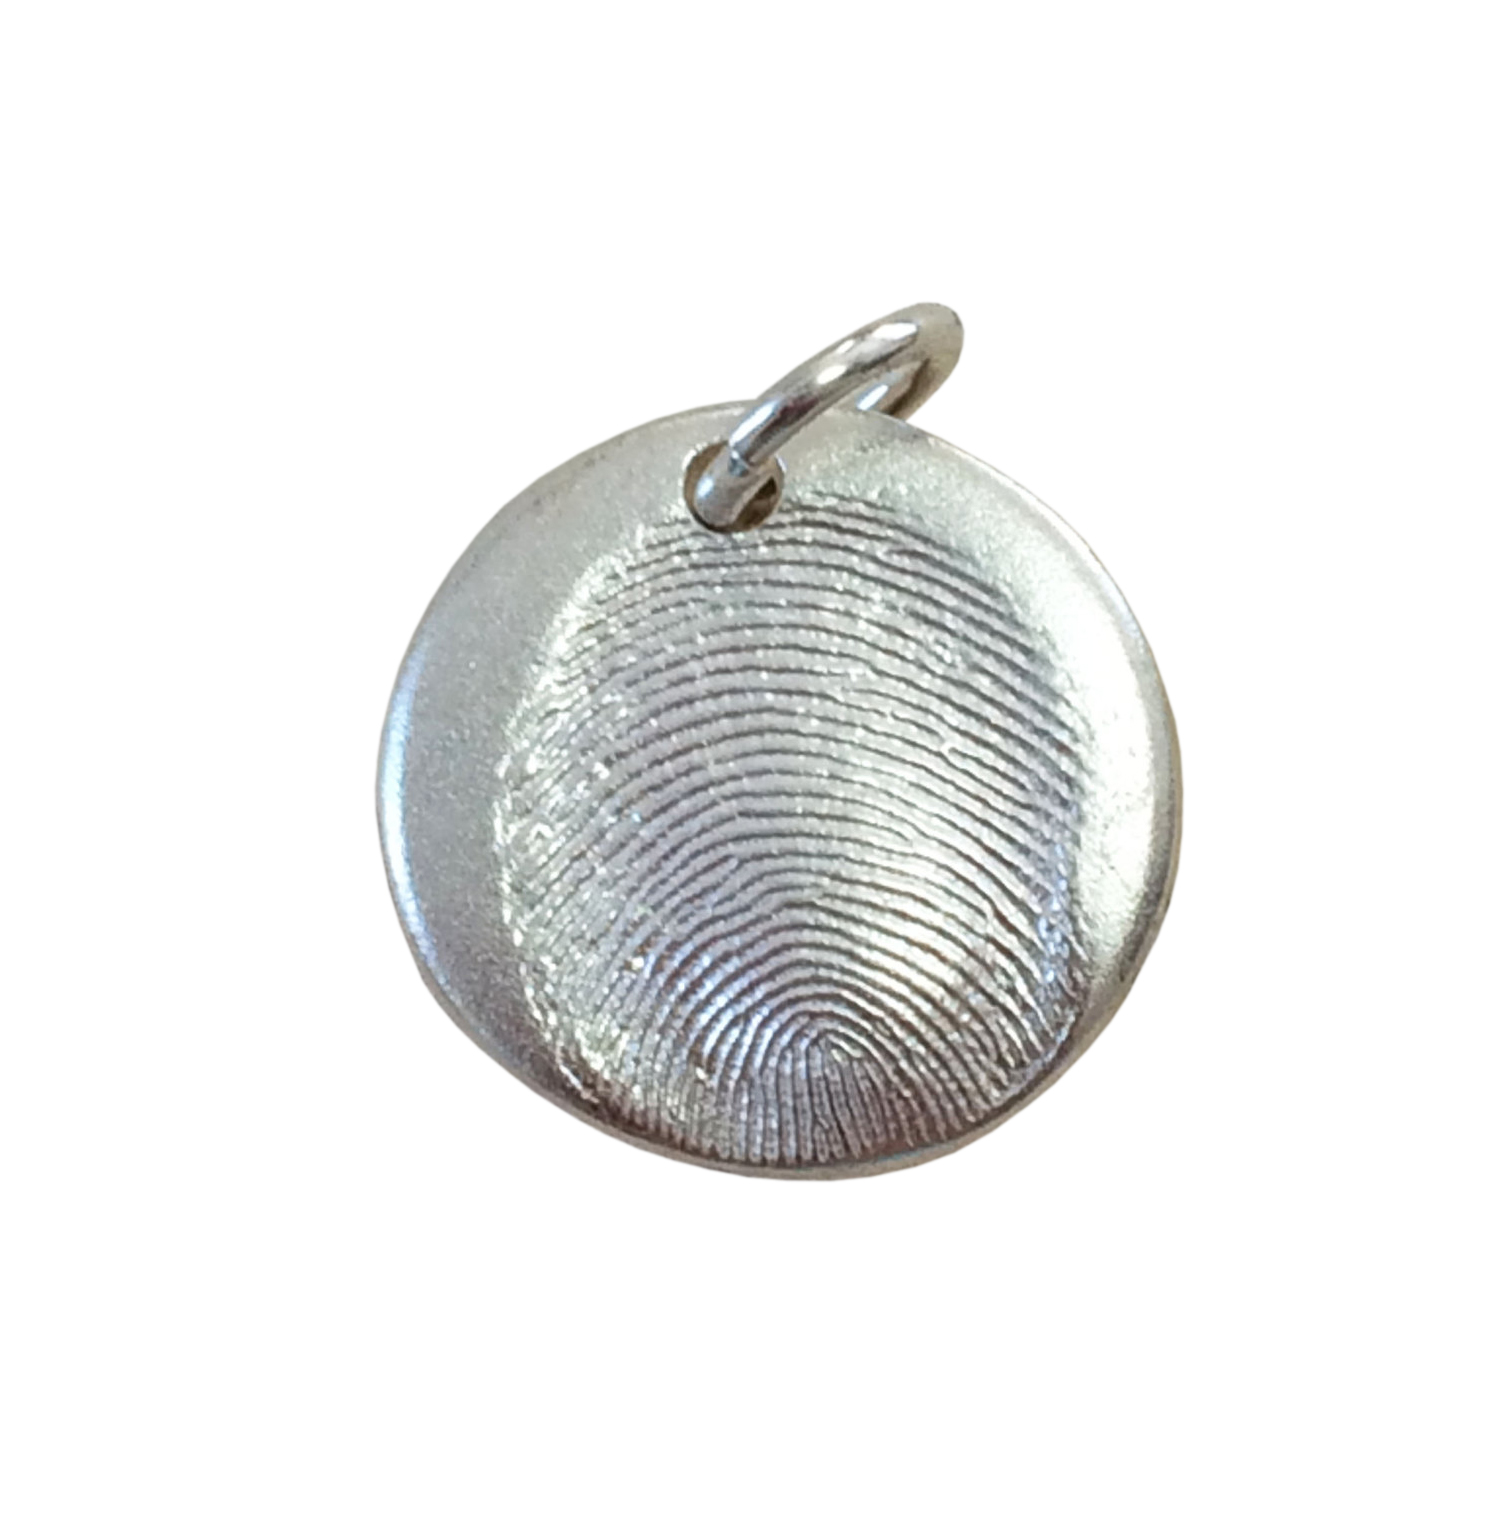 Spoken Antiquity Thumbprint Necklace Jewelry Charm